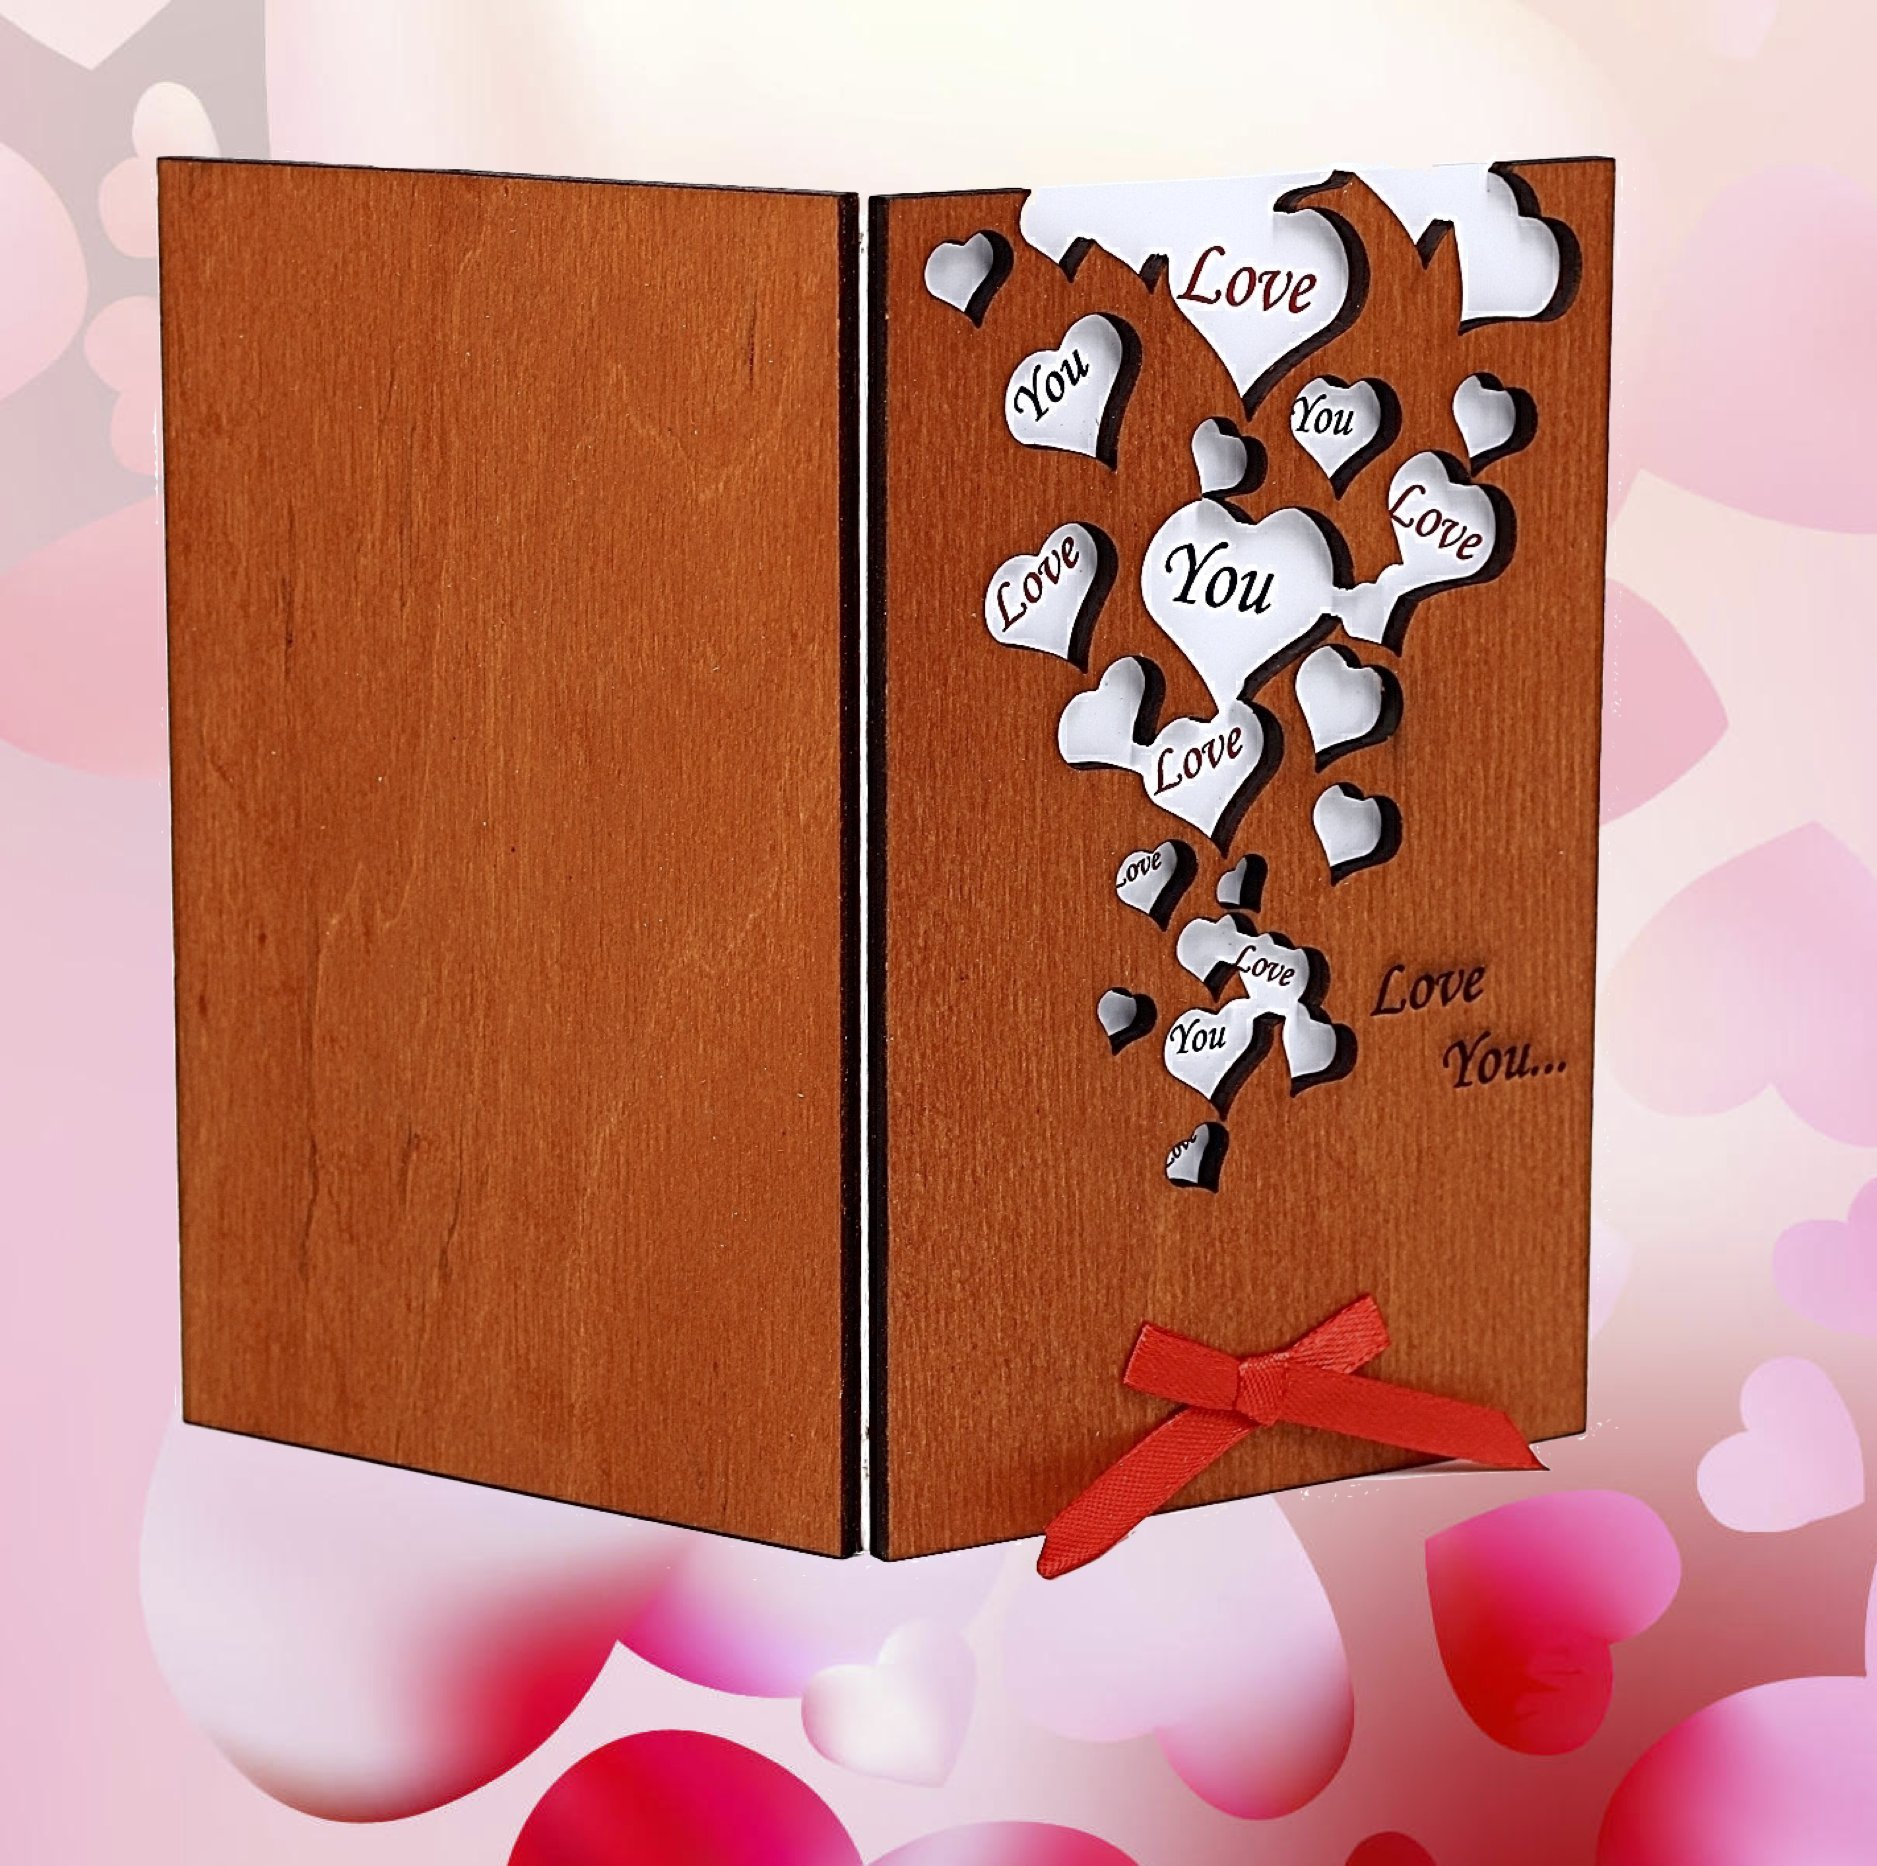 Handmade love you many hearts real wood greeting card best unusual handmade love you many hearts real wood greeting card best unusual happy birthday gift for friend mom dad or romantic valentine 5 th wedding dating m4hsunfo